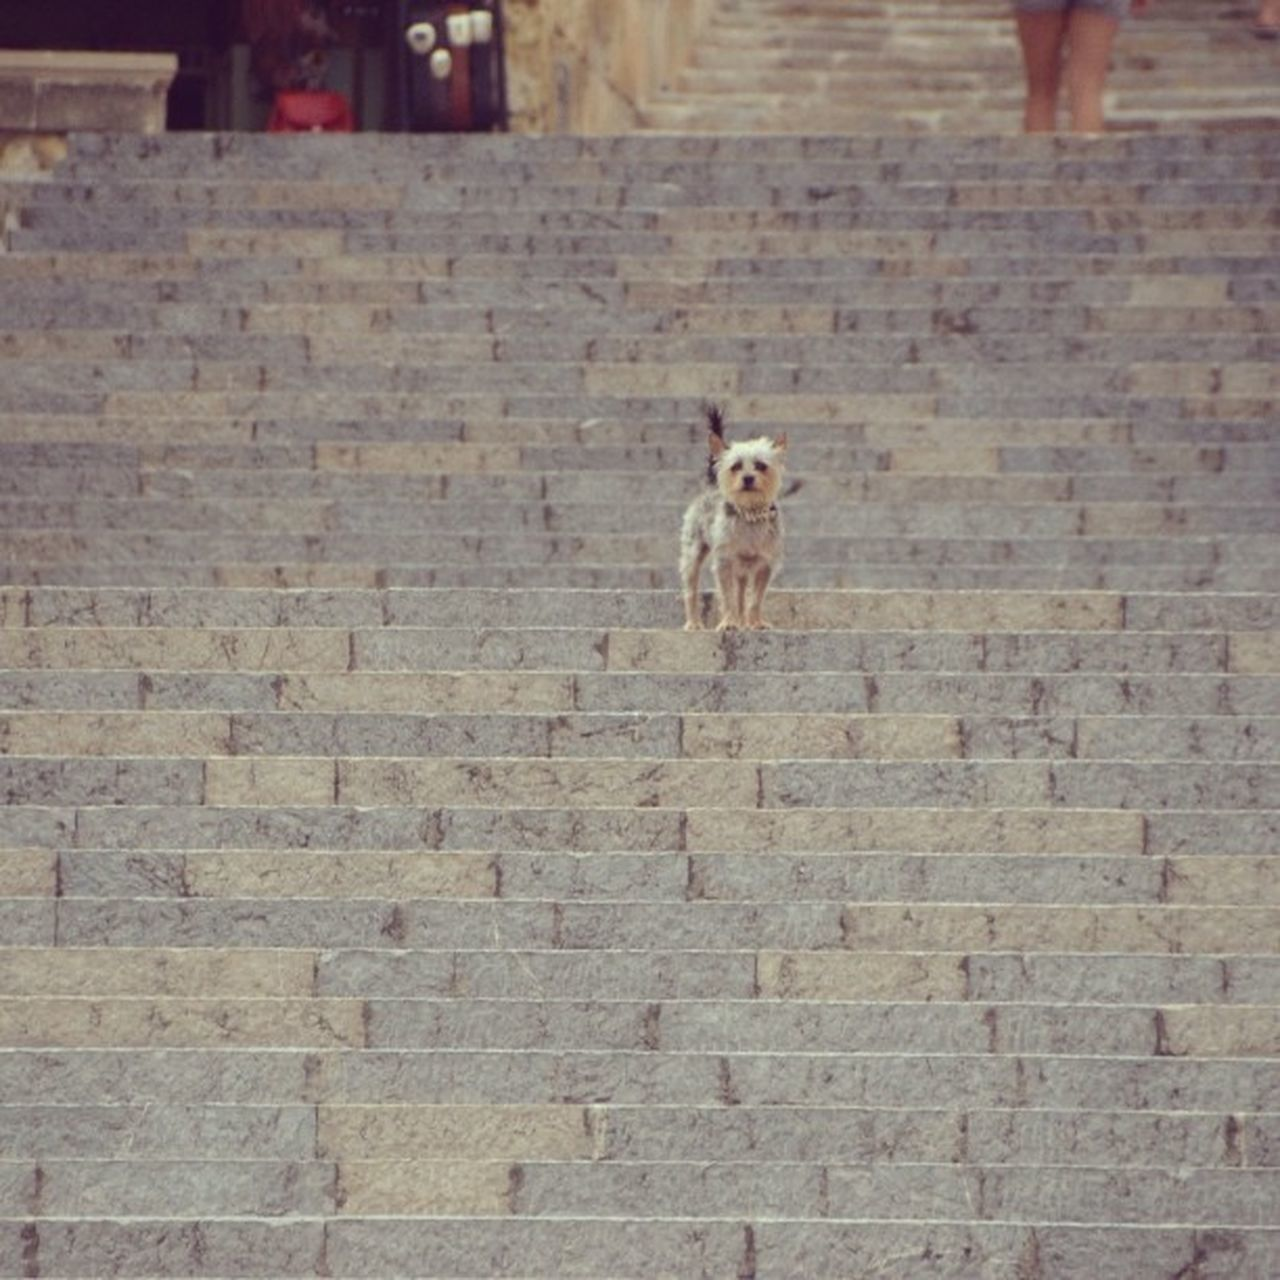 Cutest Dog Dogdays Hot Summer Vacation Holiday Holidays SPAIN Mallorca Island España Animal Pet Love Instadogs Dogsofinstagram Dogotd POTD Dailydog Dogstagram Colors Photography Nikon Happy stairs toninton